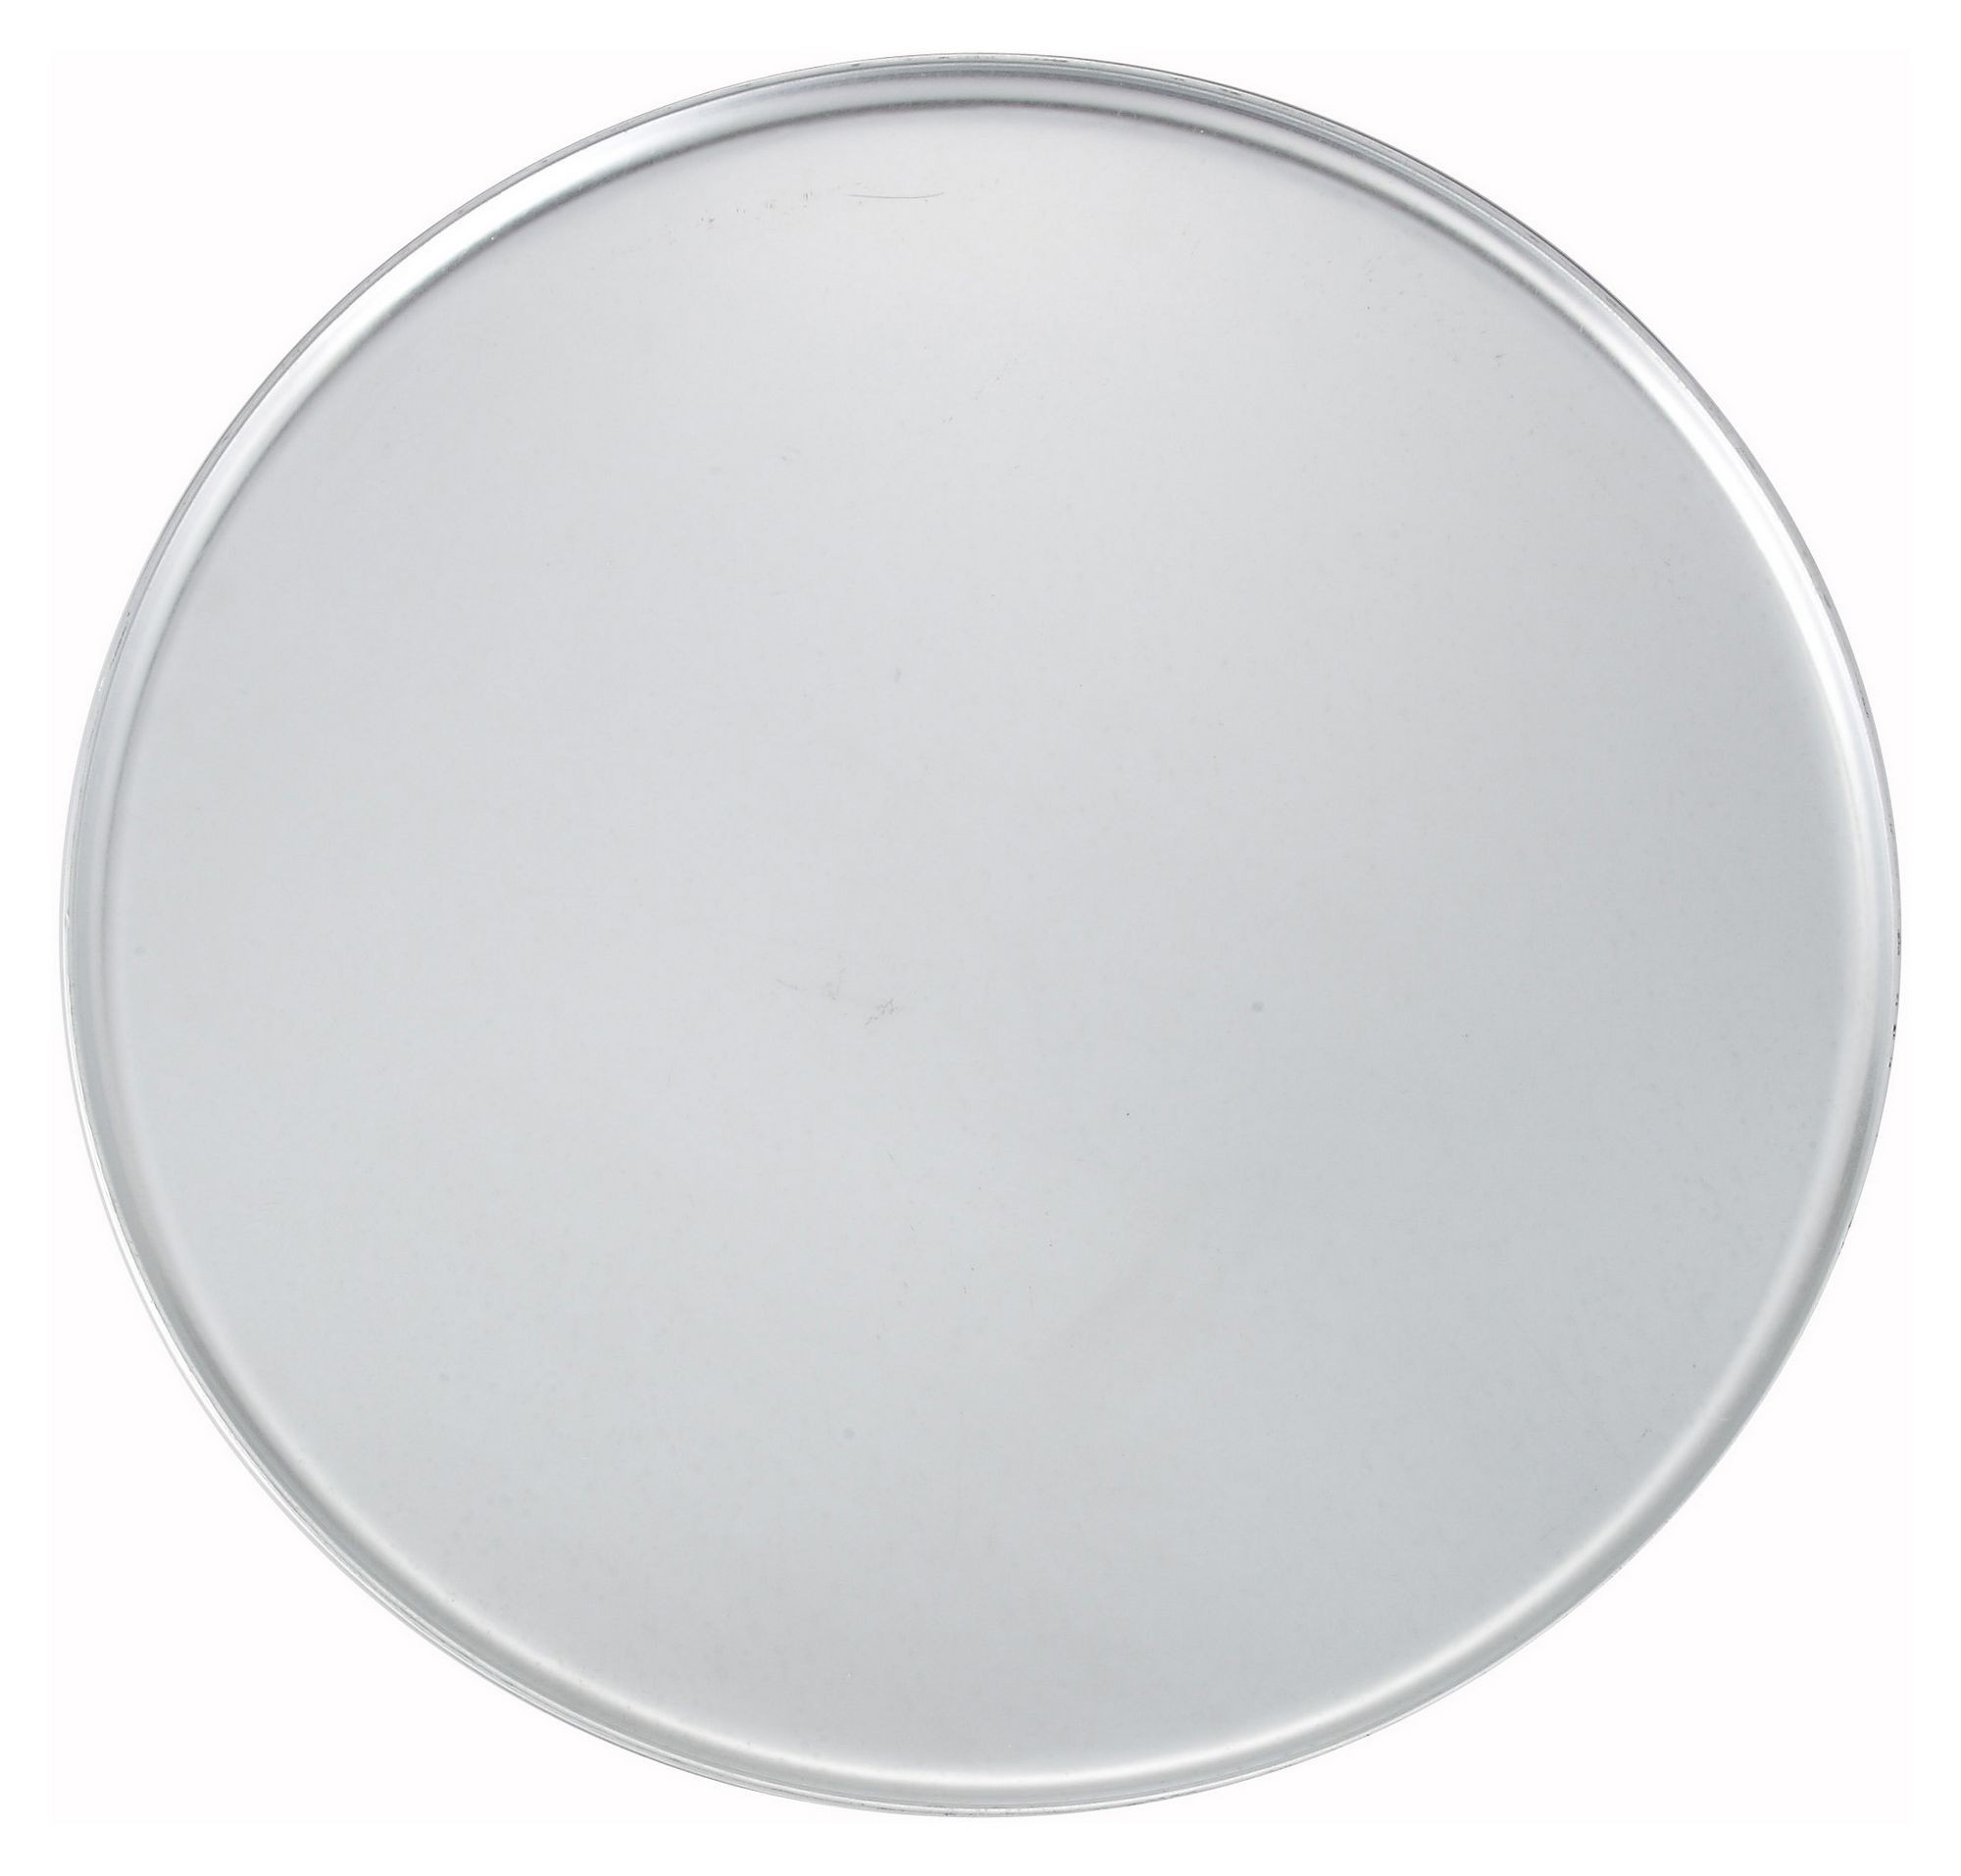 Coupe-Style Aluminum Pizza Pan - 15